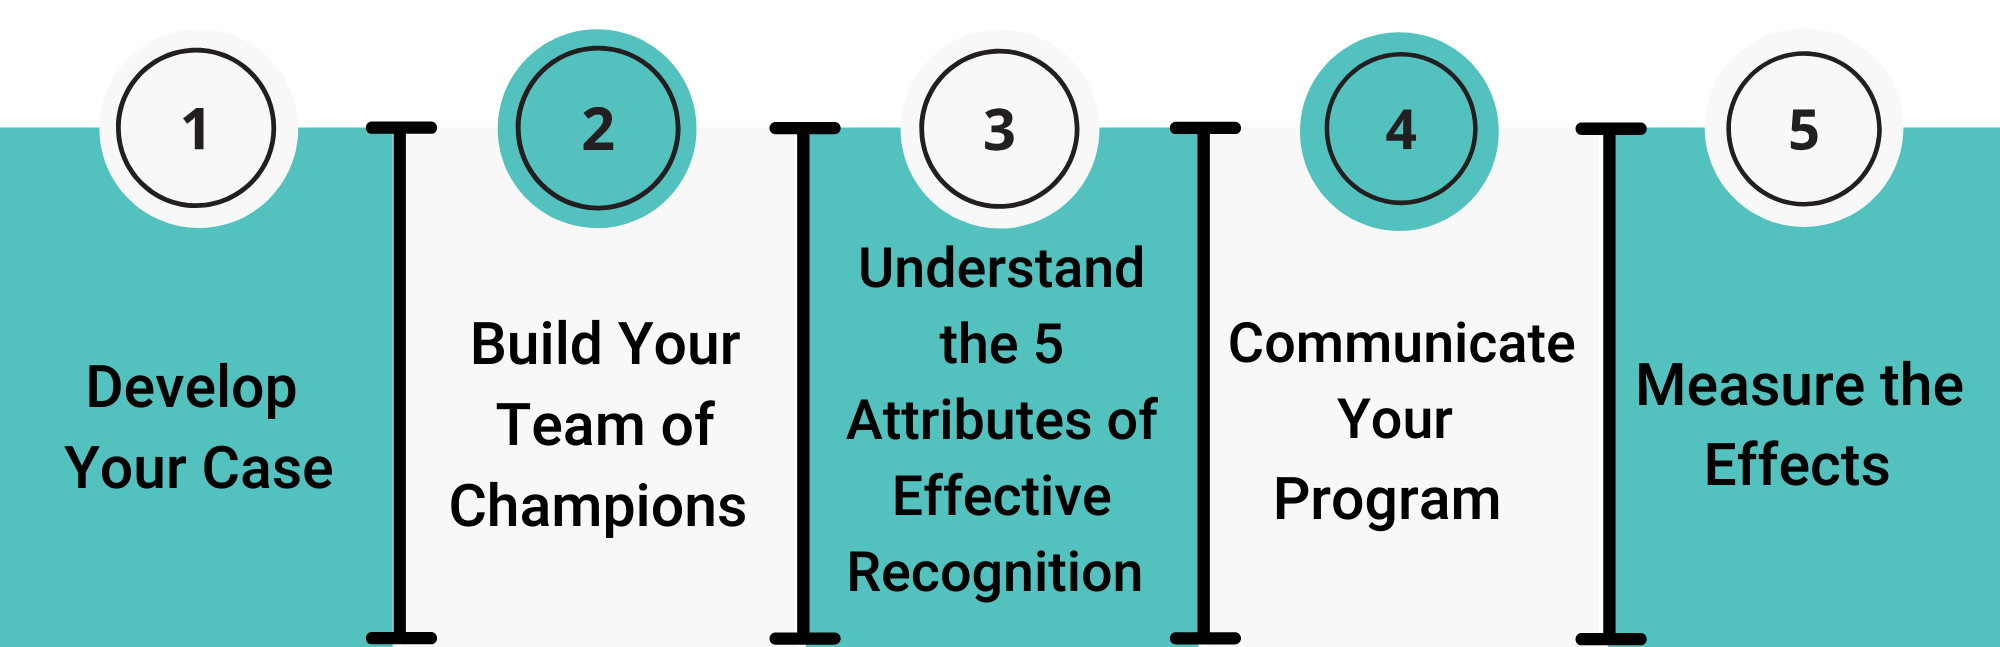 5 steps to building an impactful employee recognition program